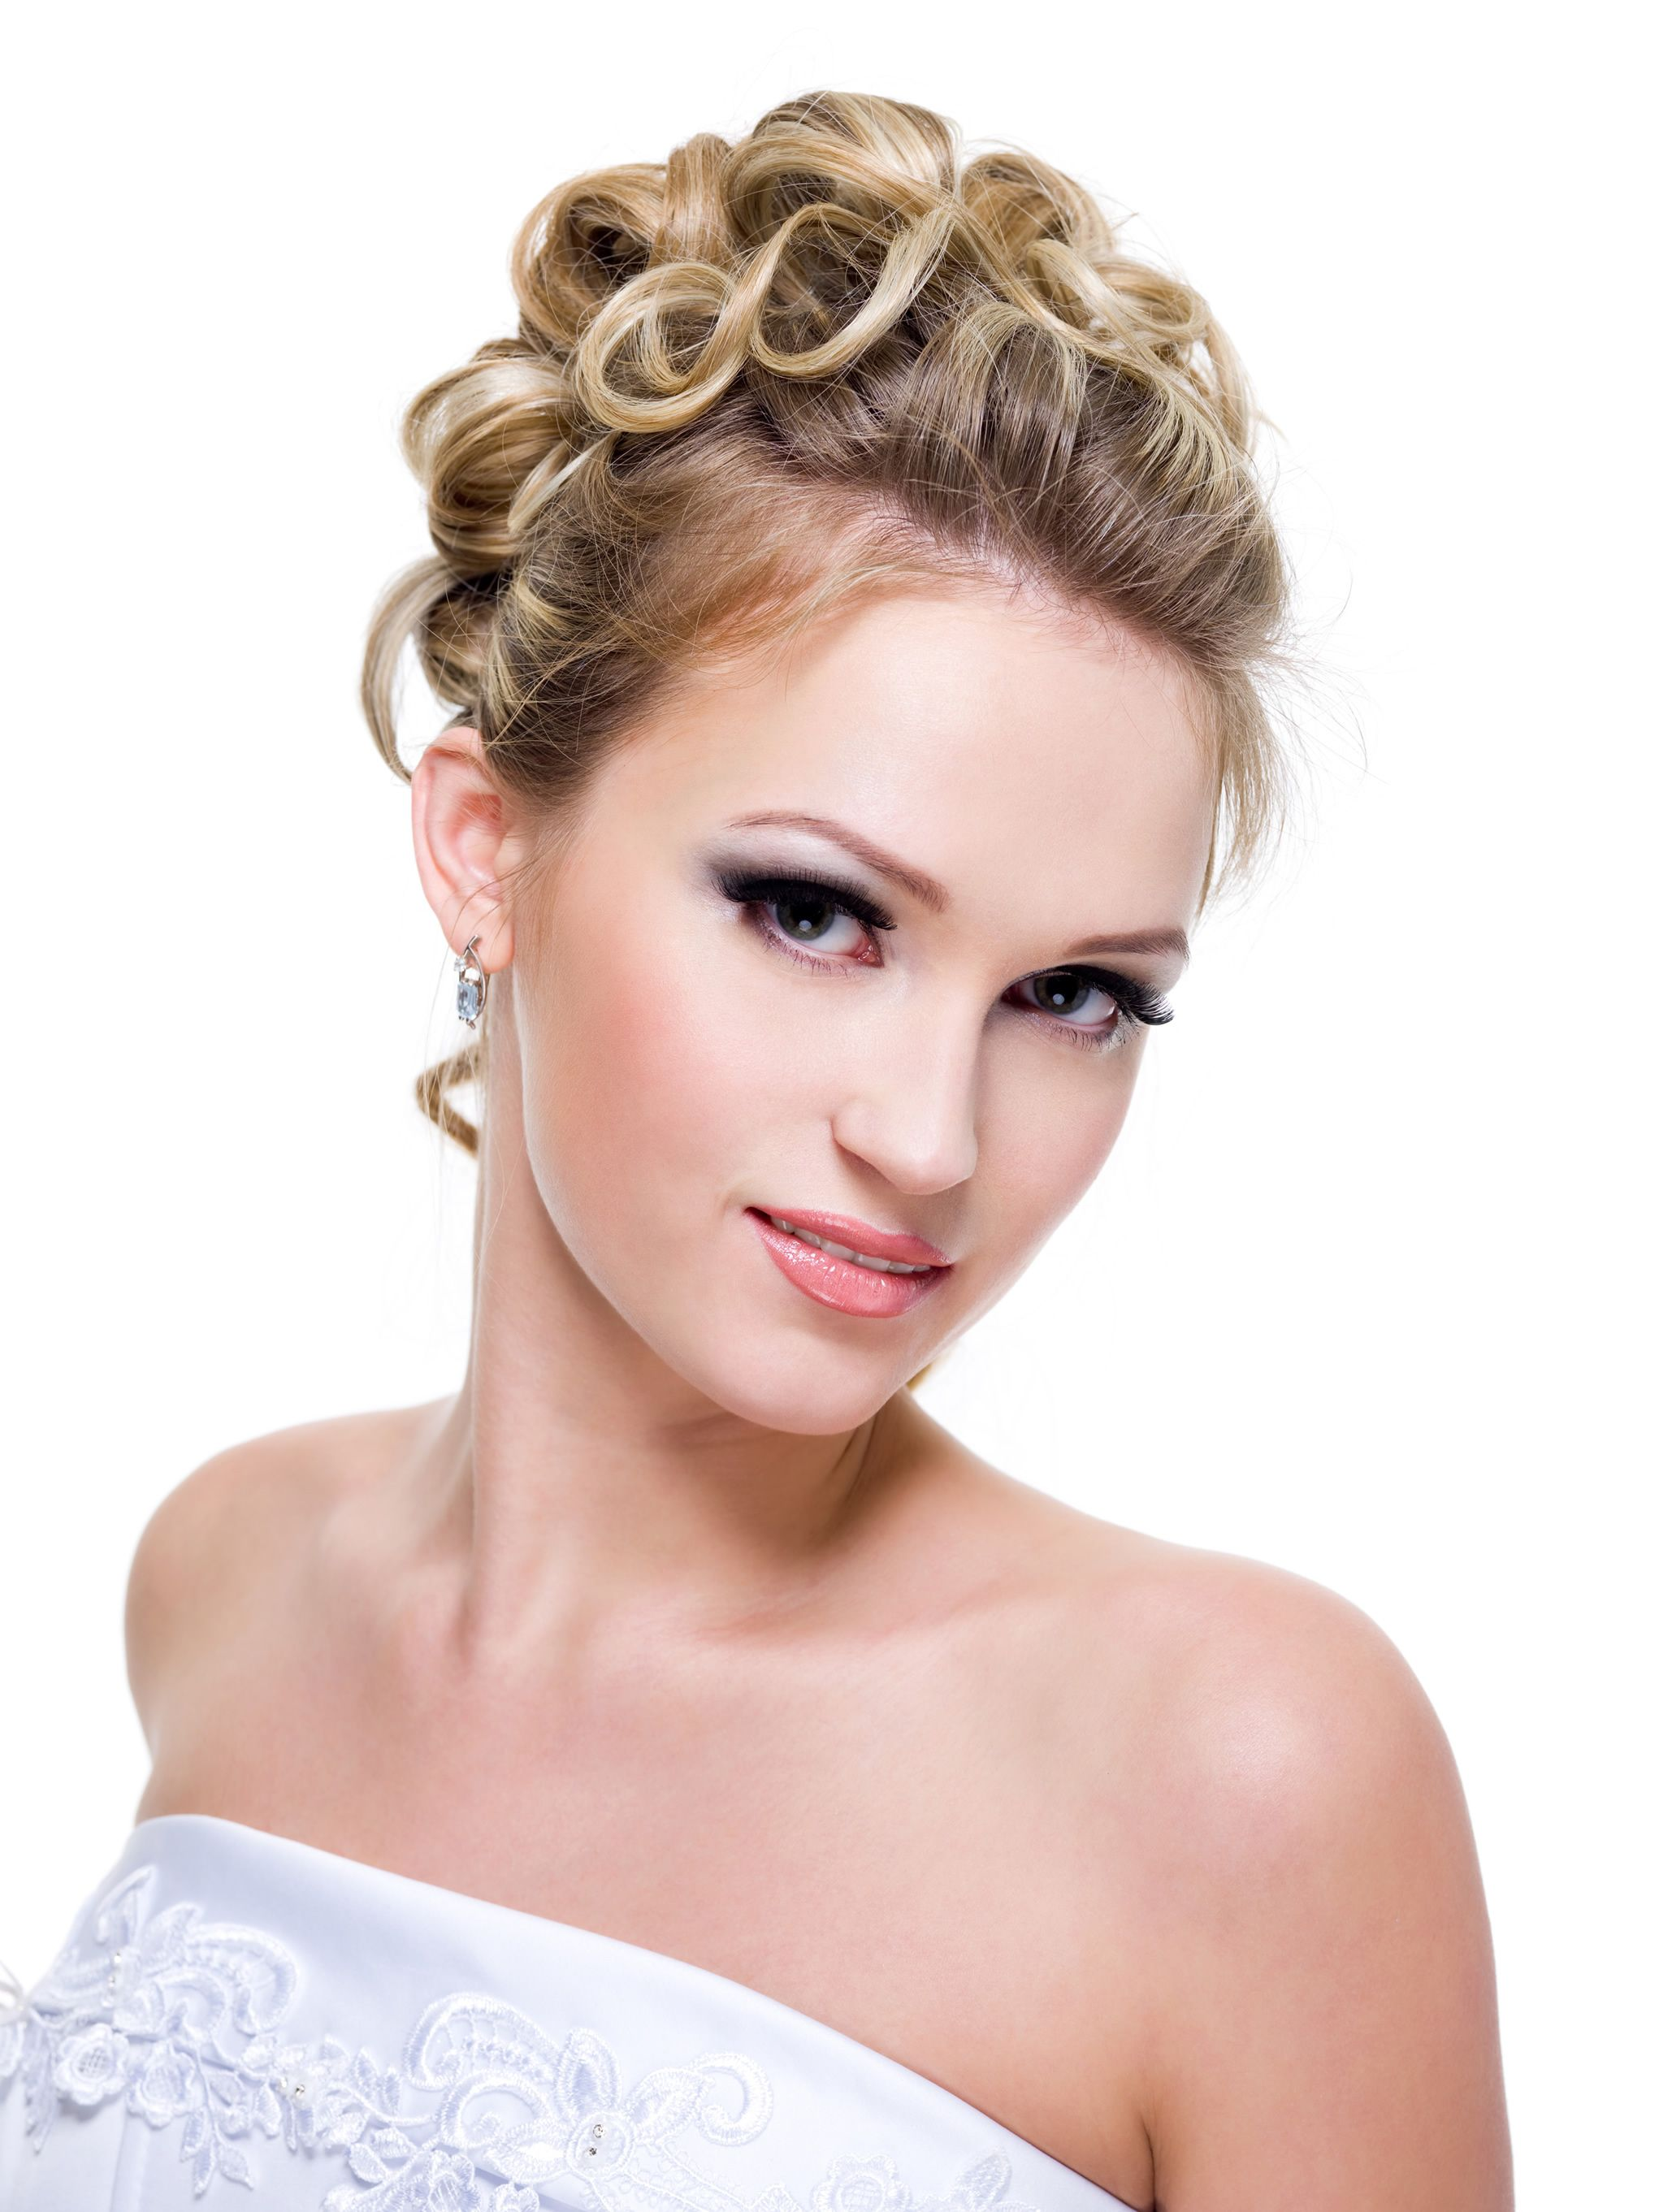 Best Tips For Hair And Makeup Bridal Hair And Makeup In Dc